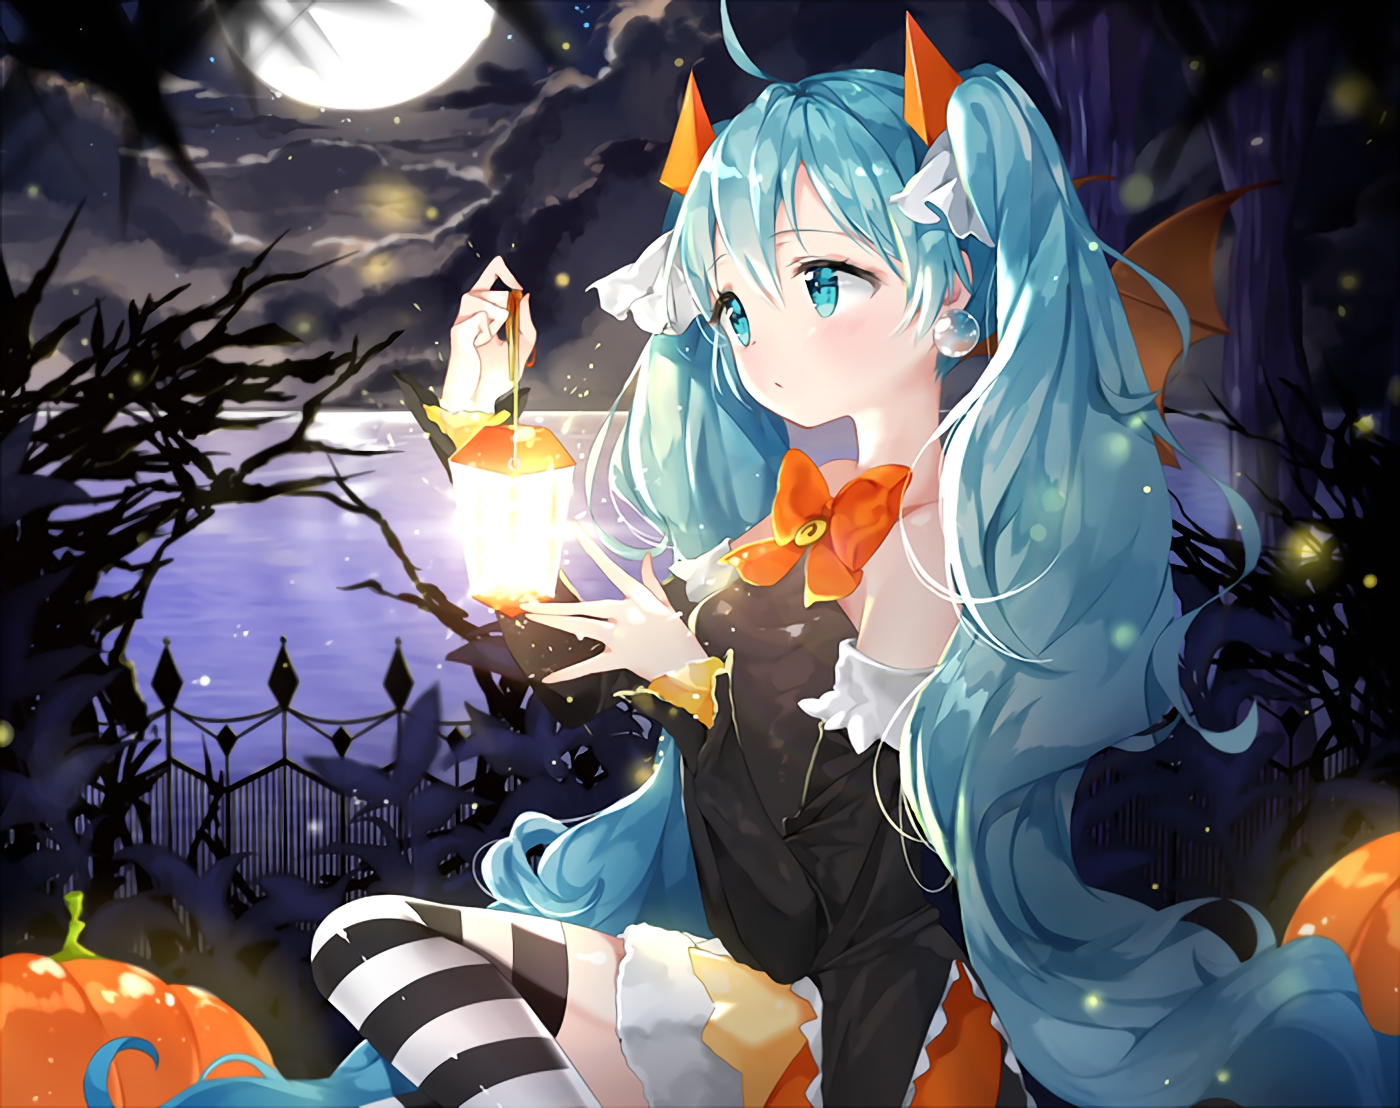 A Spooky Night [Vocaloid]